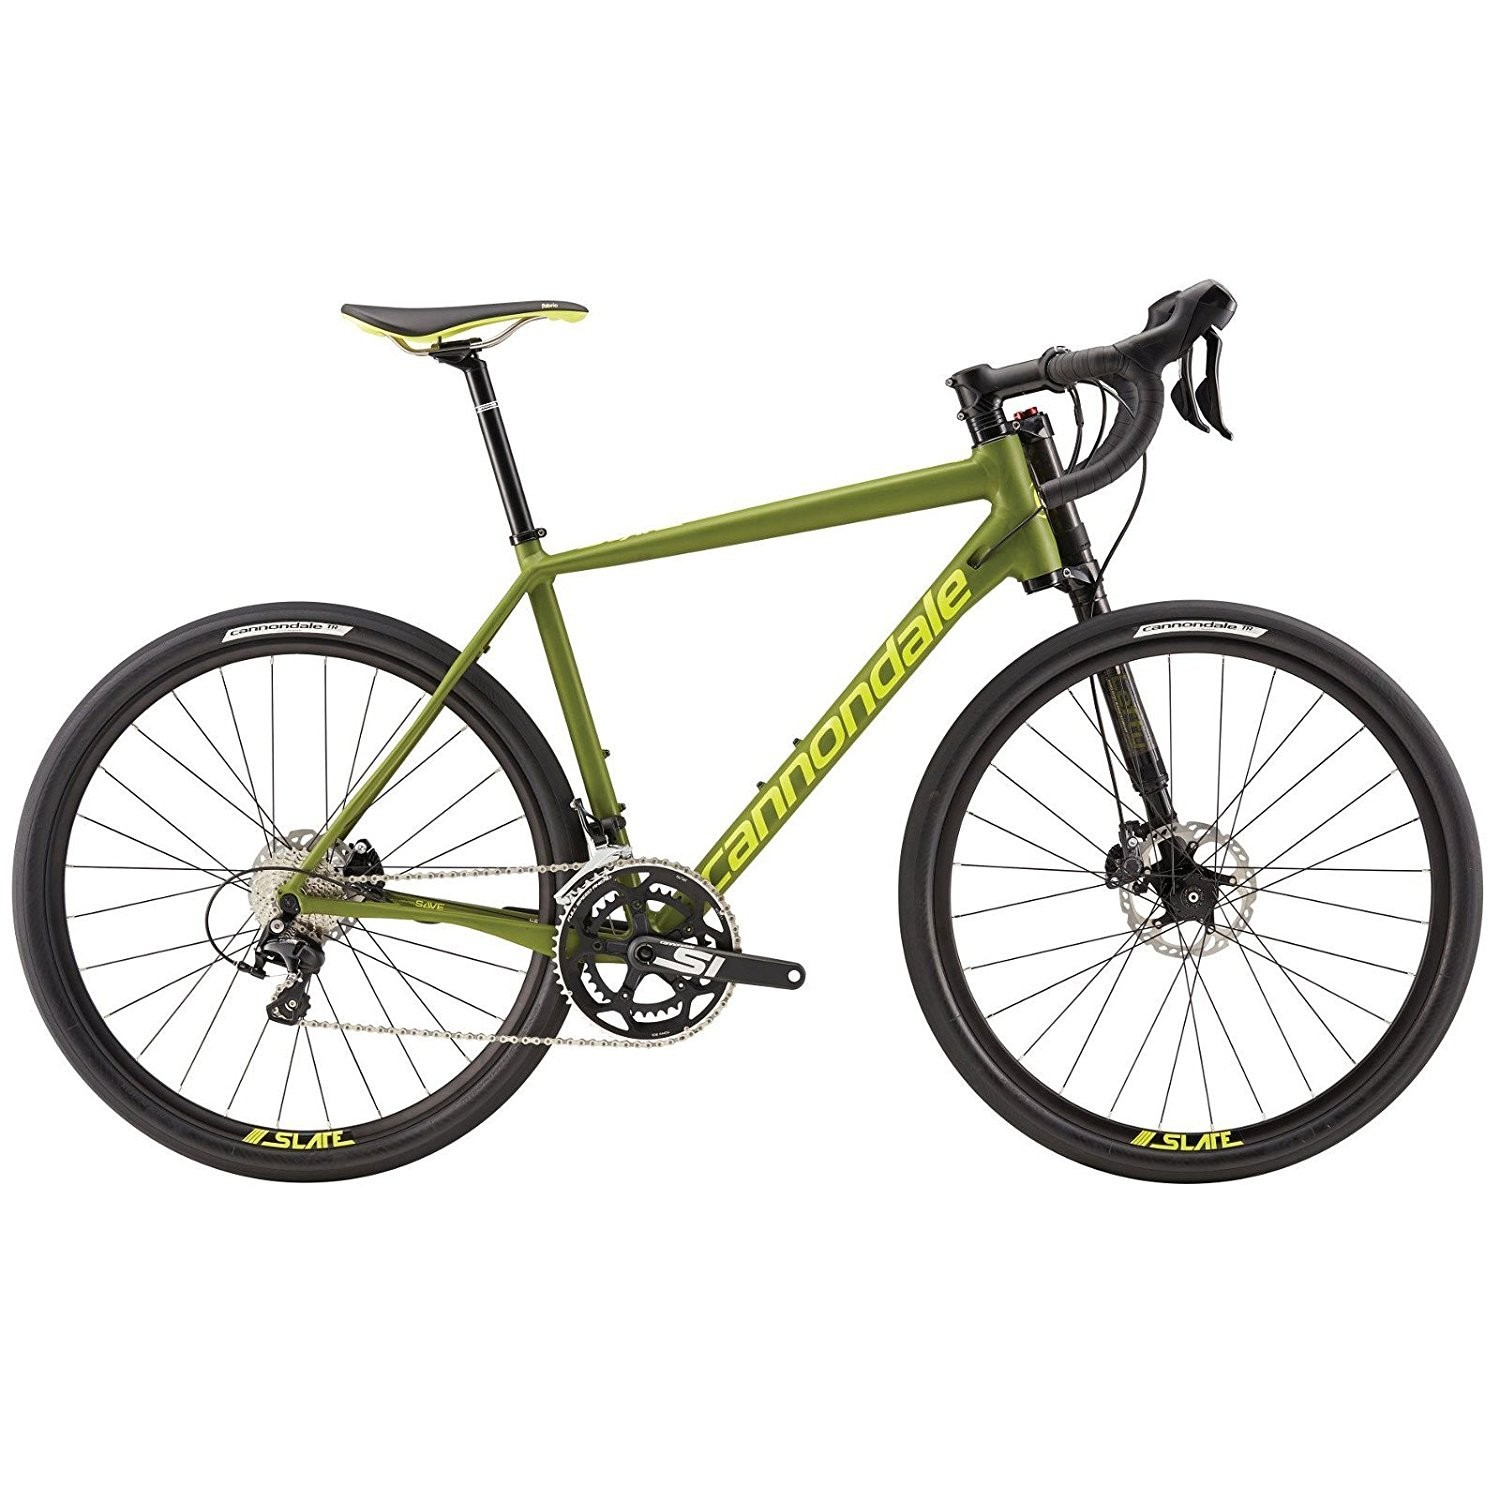 Top 7 Best Bicycles For Men